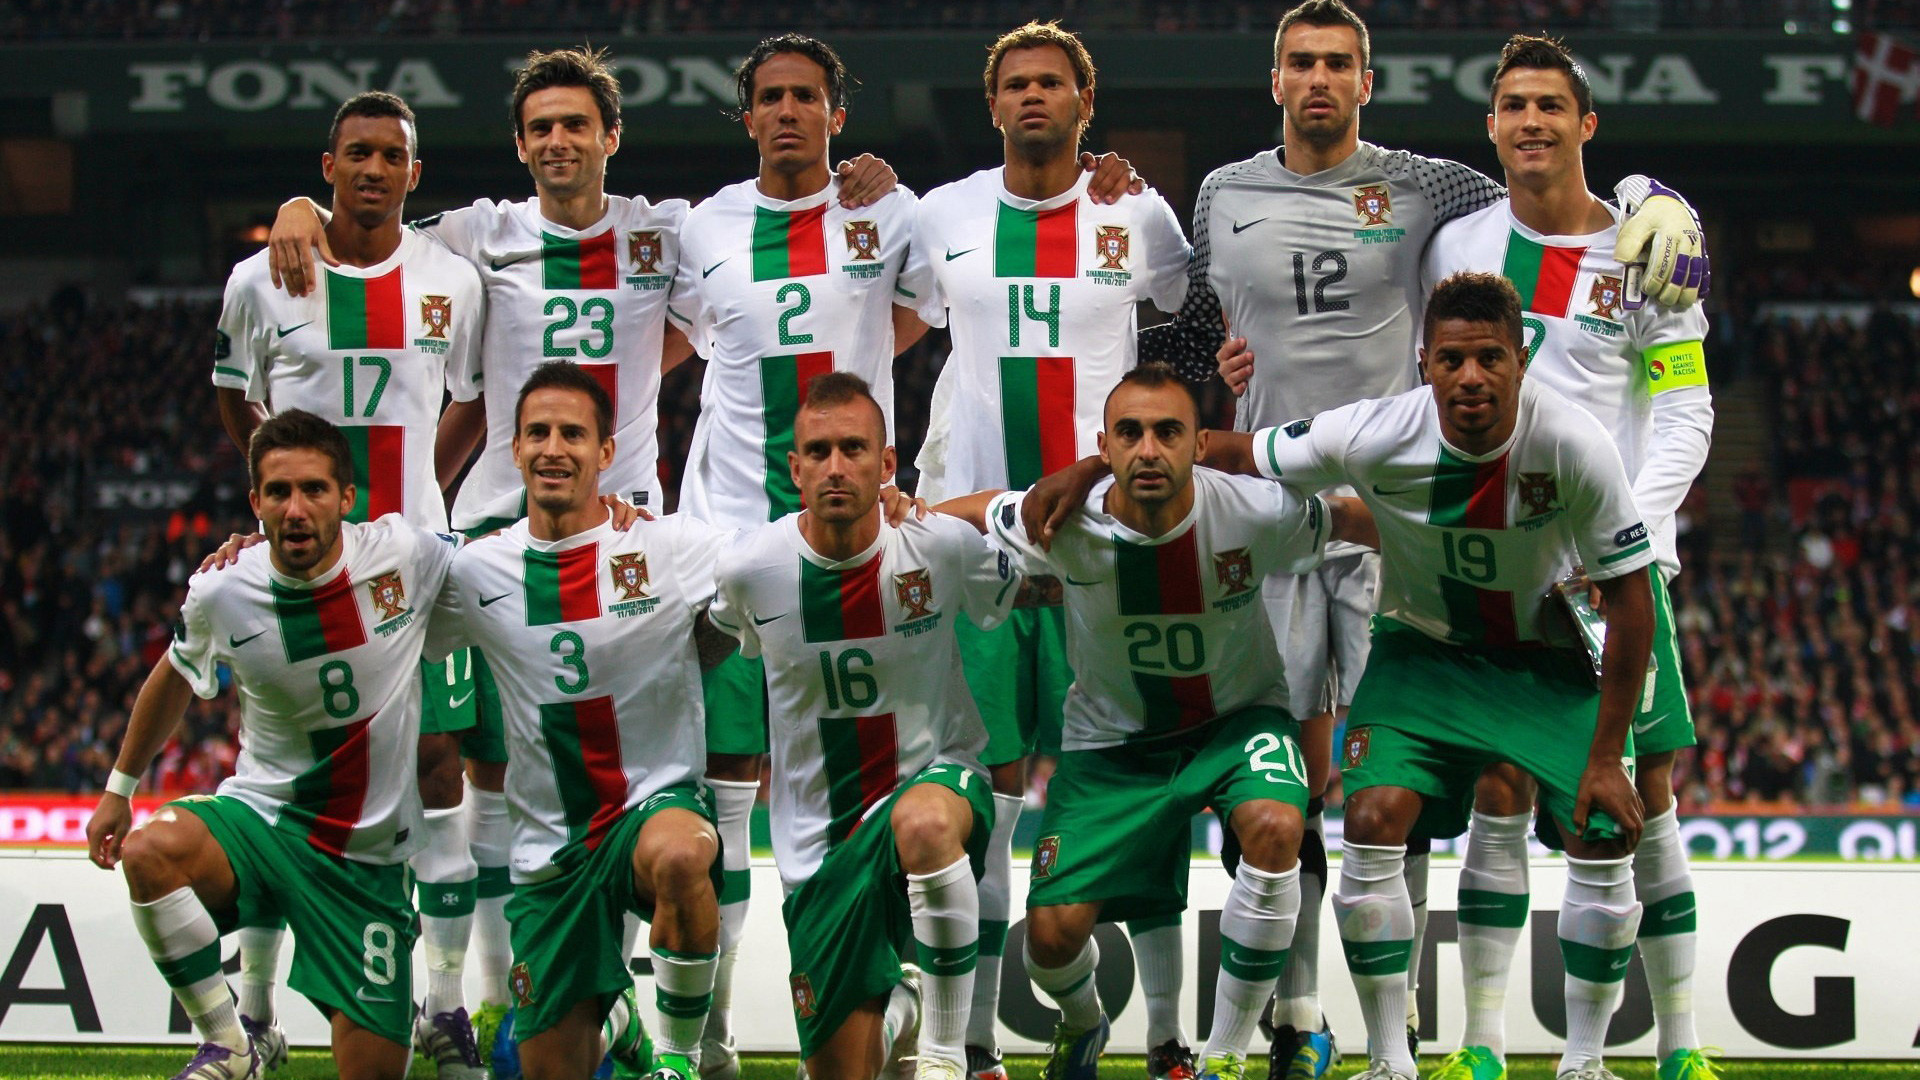 Mexico Soccer Team 2018 Wallpaper 77 Images